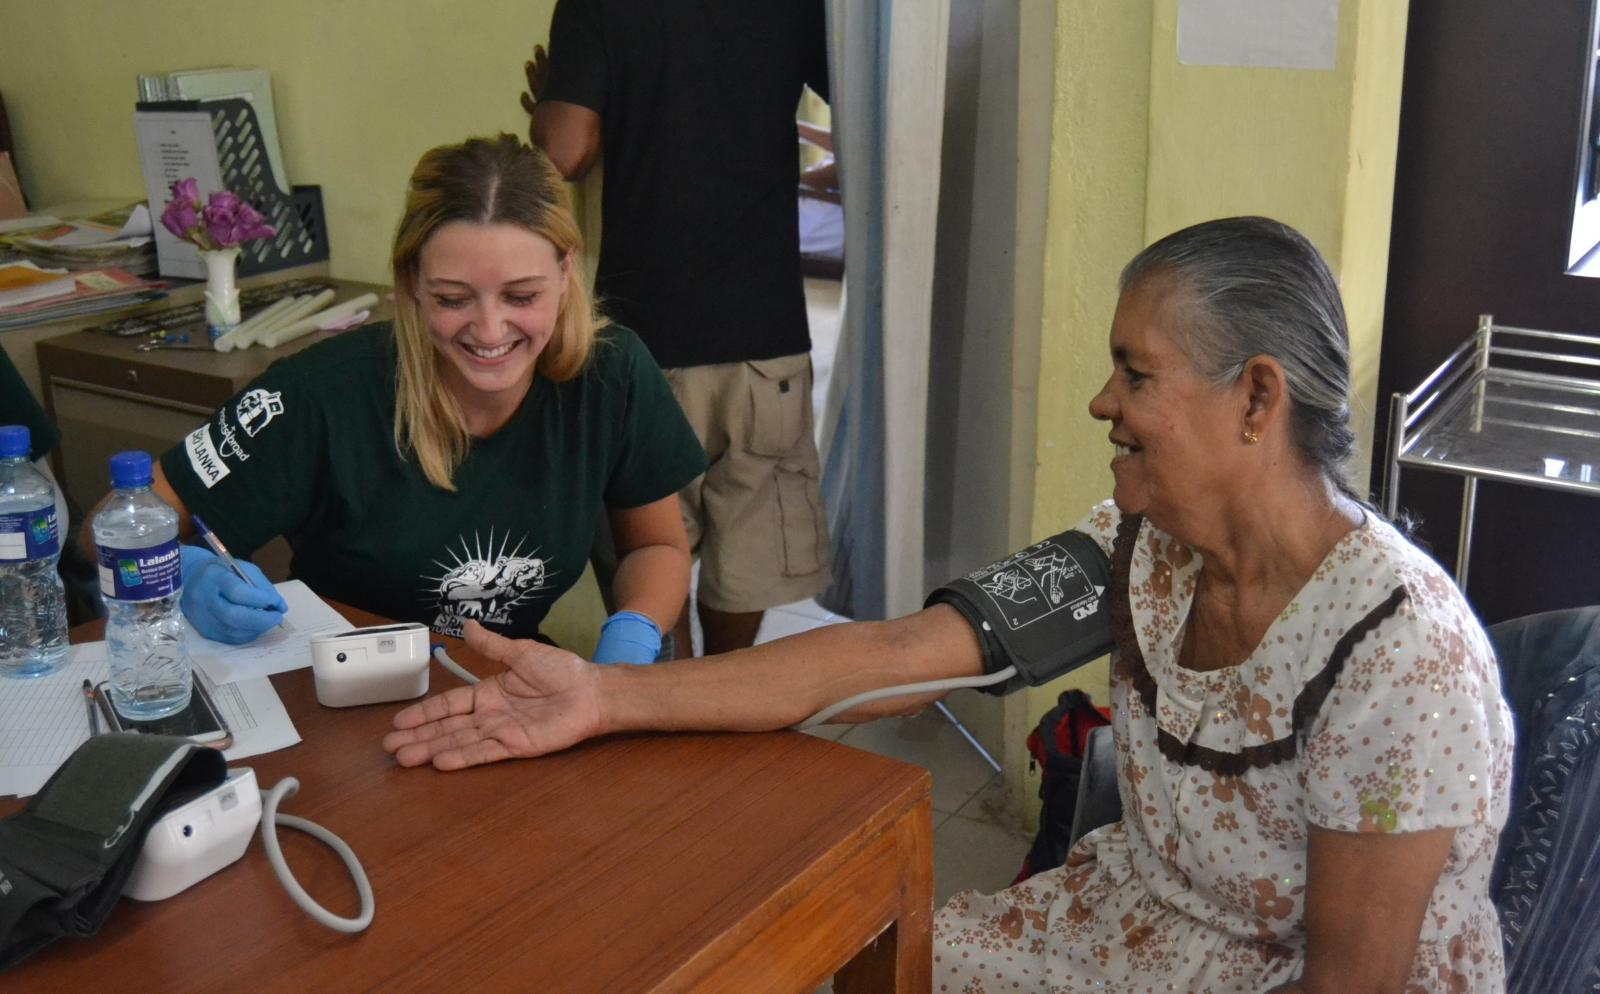 Doctors without Borders Alternatives | Projects Abroad US